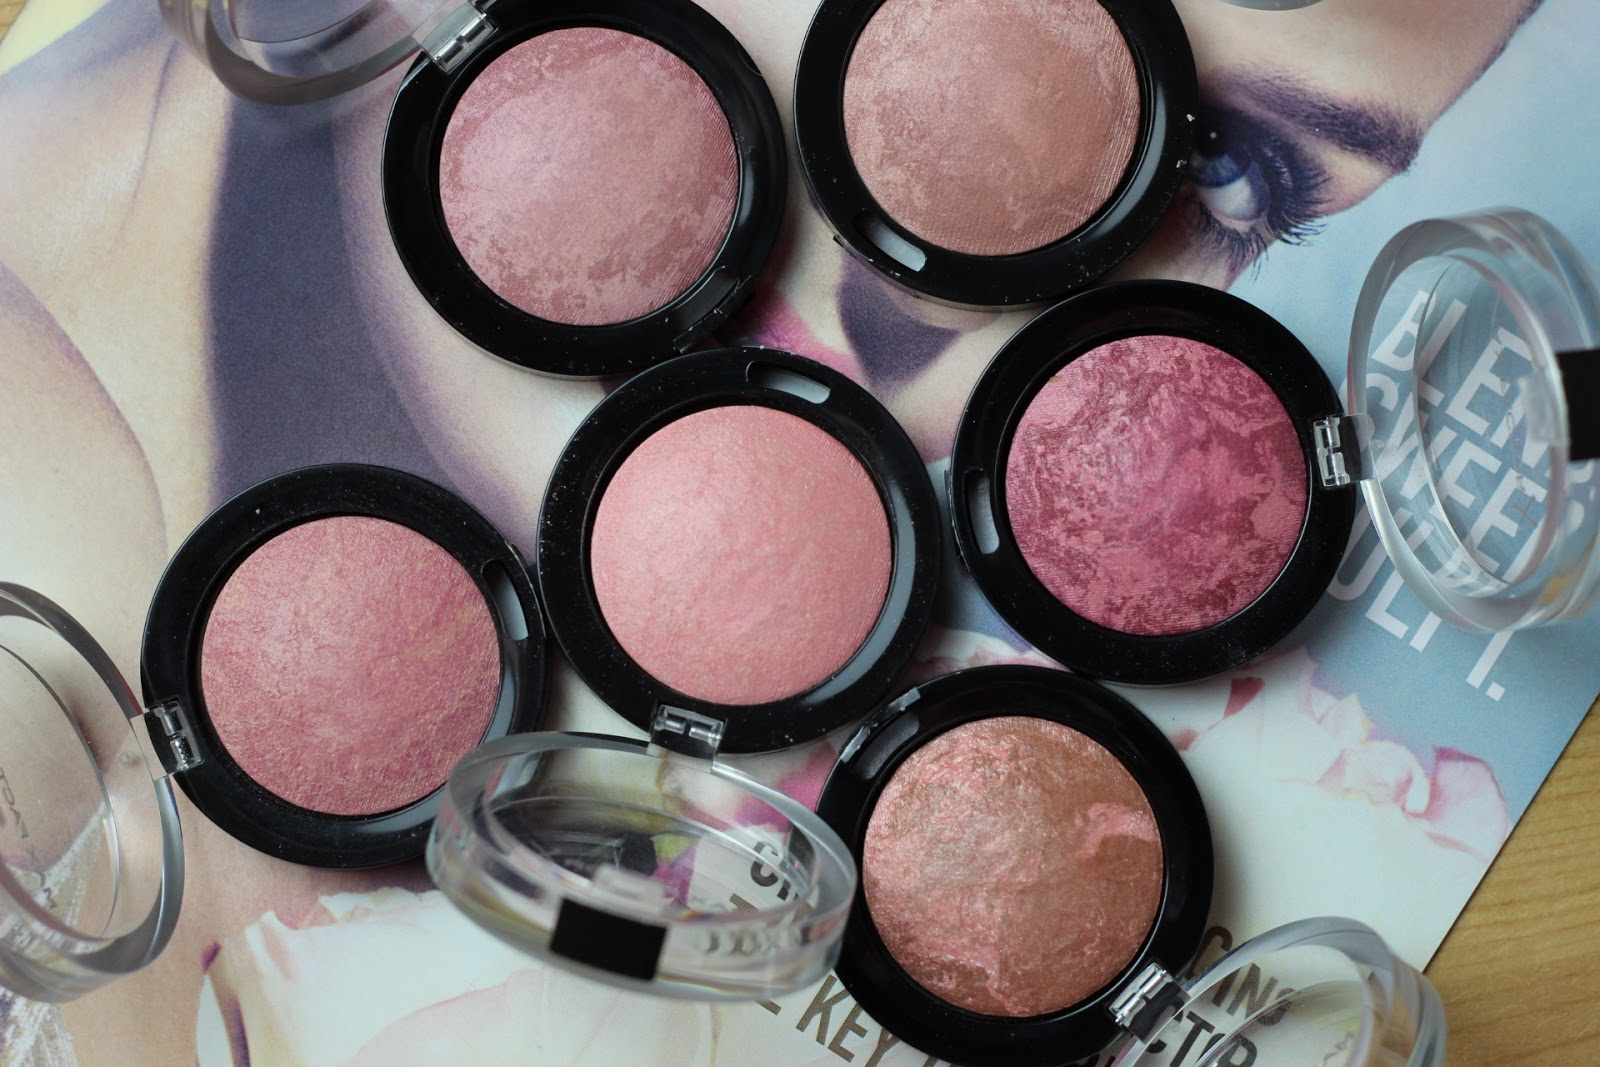 Maxfactor Creme Puff Blush Review & Swatches